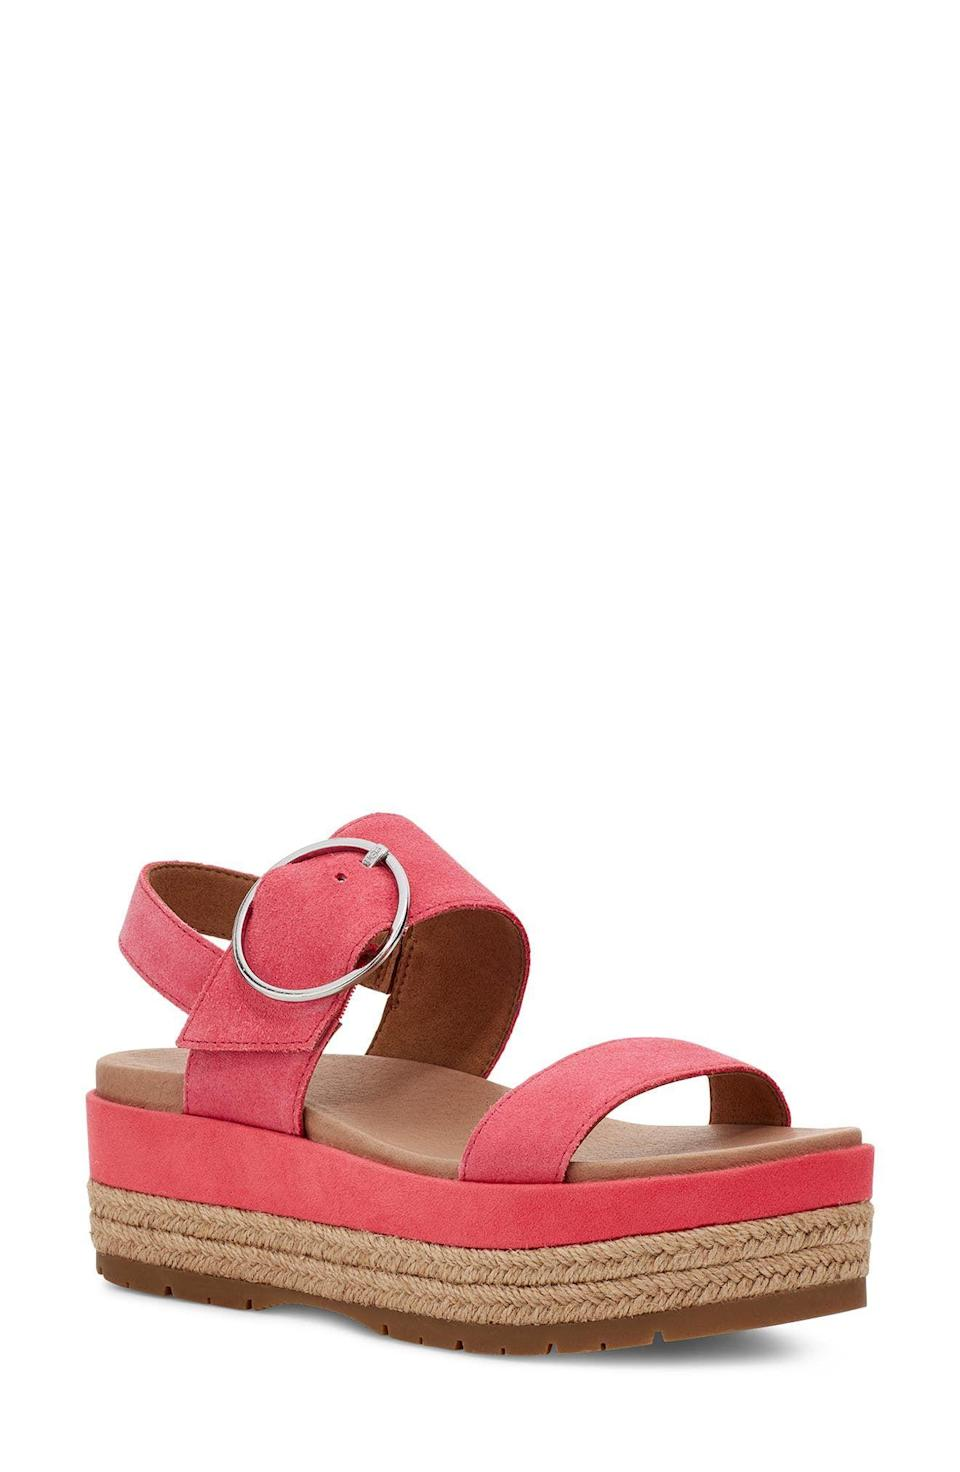 """<p><strong>UGG</strong></p><p>nordstrom.com</p><p><strong>$130.00</strong></p><p><a href=""""https://go.redirectingat.com?id=74968X1596630&url=https%3A%2F%2Fwww.nordstrom.com%2Fs%2Fugg-april-espadrille-platform-sandal-women%2F5806562&sref=https%3A%2F%2Fwww.oprahdaily.com%2Fstyle%2Fg25893553%2Fbest-sandals-for-women%2F"""" rel=""""nofollow noopener"""" target=""""_blank"""" data-ylk=""""slk:SHOP NOW"""" class=""""link rapid-noclick-resp"""">SHOP NOW</a></p><p>Made from premium leather, this platform espadrille adds a couple inches while still being comfortable—thanks to the memory foam lining and rubber soles.</p>"""